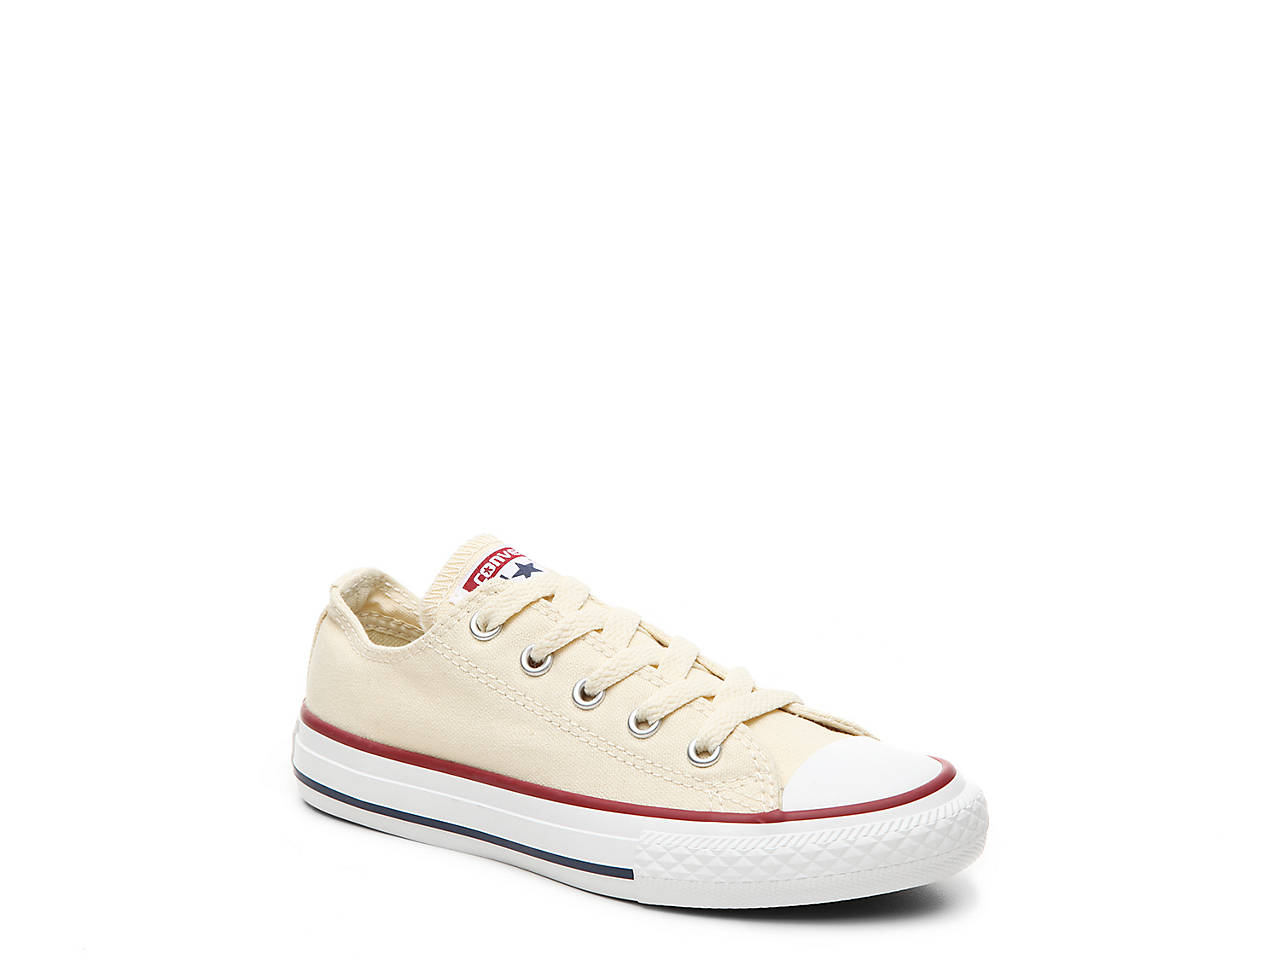 Converse Chuck Taylor All Star Toddler   Youth Sneaker Kids Shoes  71bd1470e4